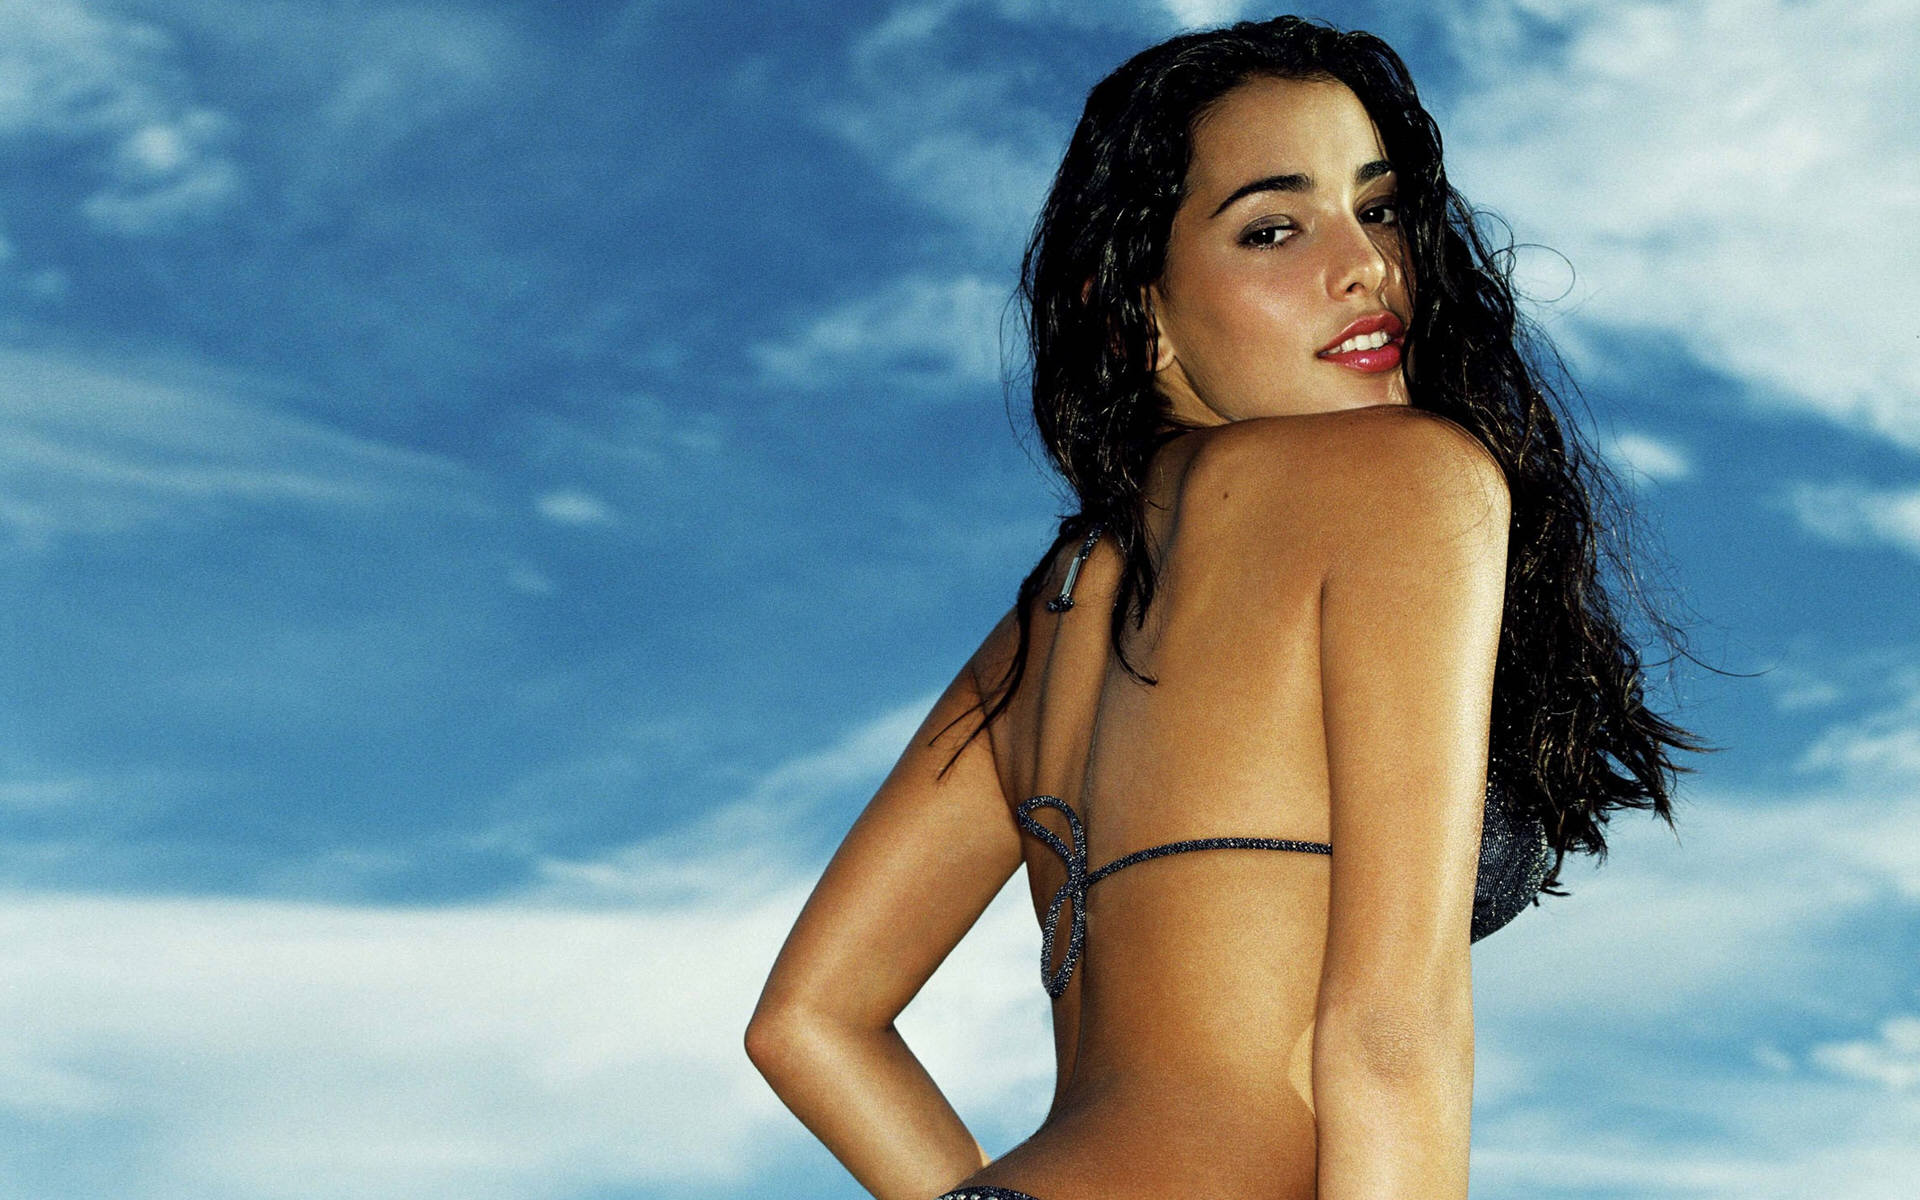 natalie martinez hot wallpaper - photo #19